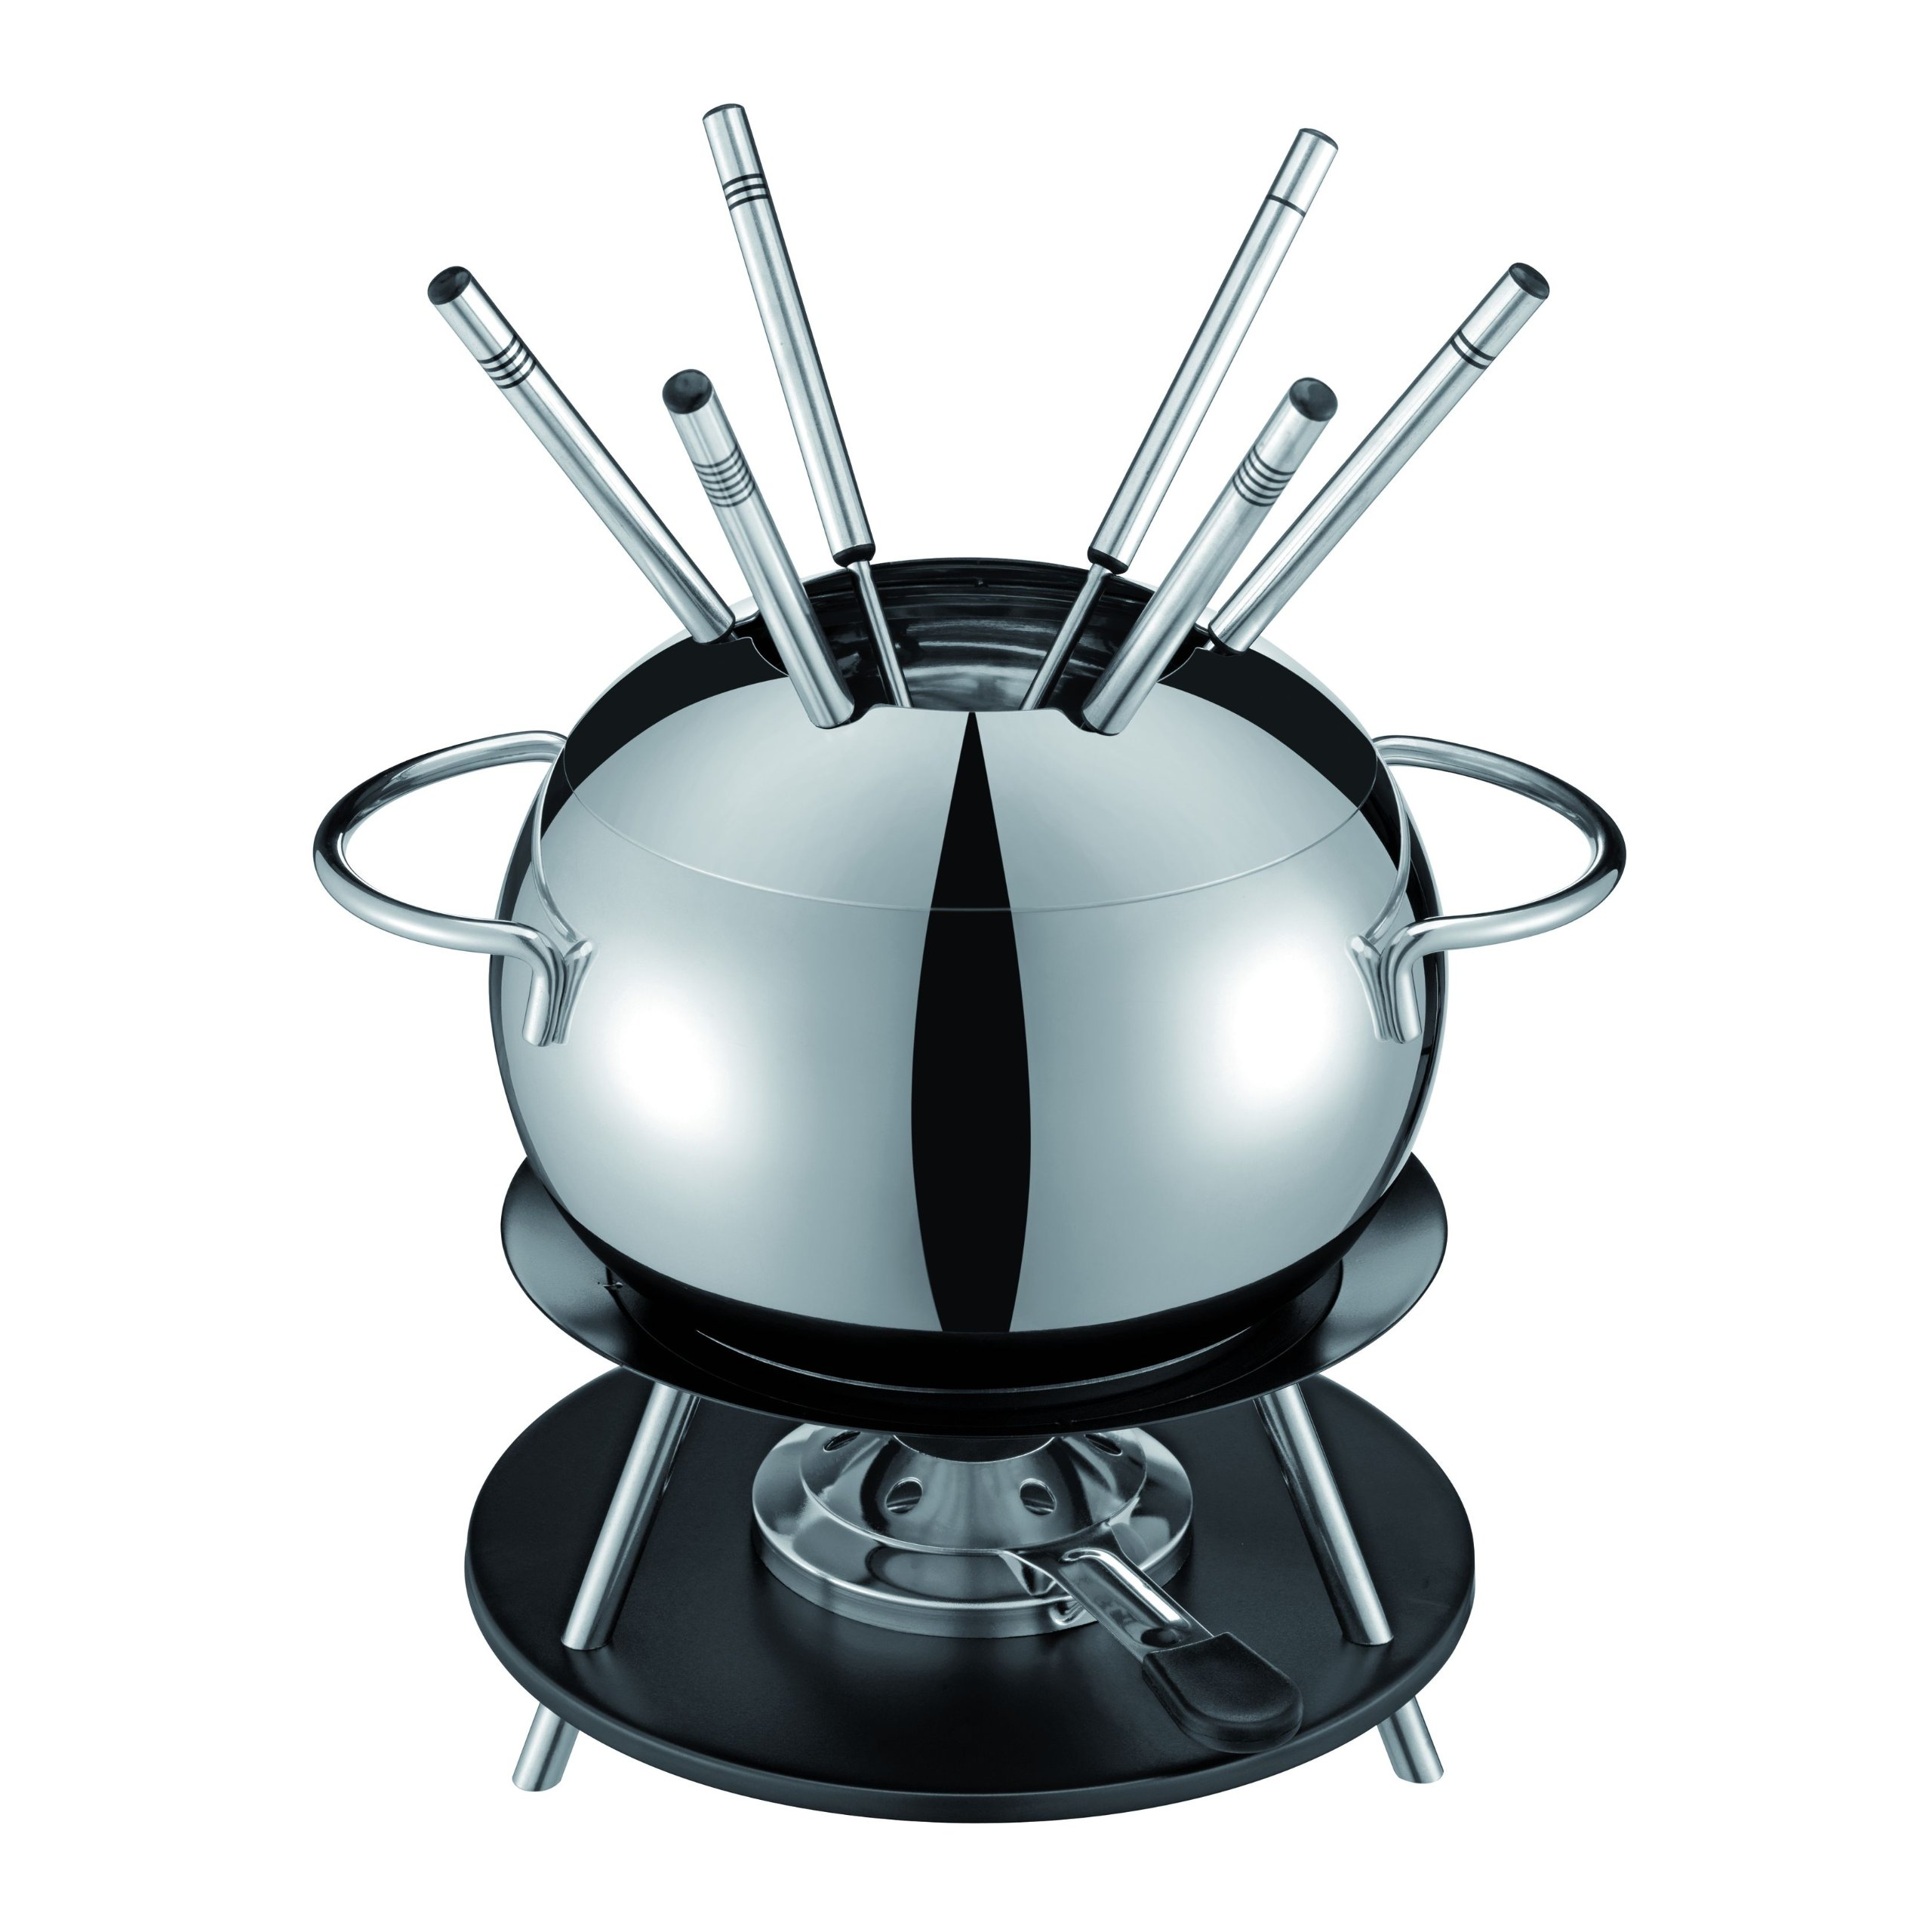 Kuhn Rikon Sphere Meat Fondue Set, Medium, Silver